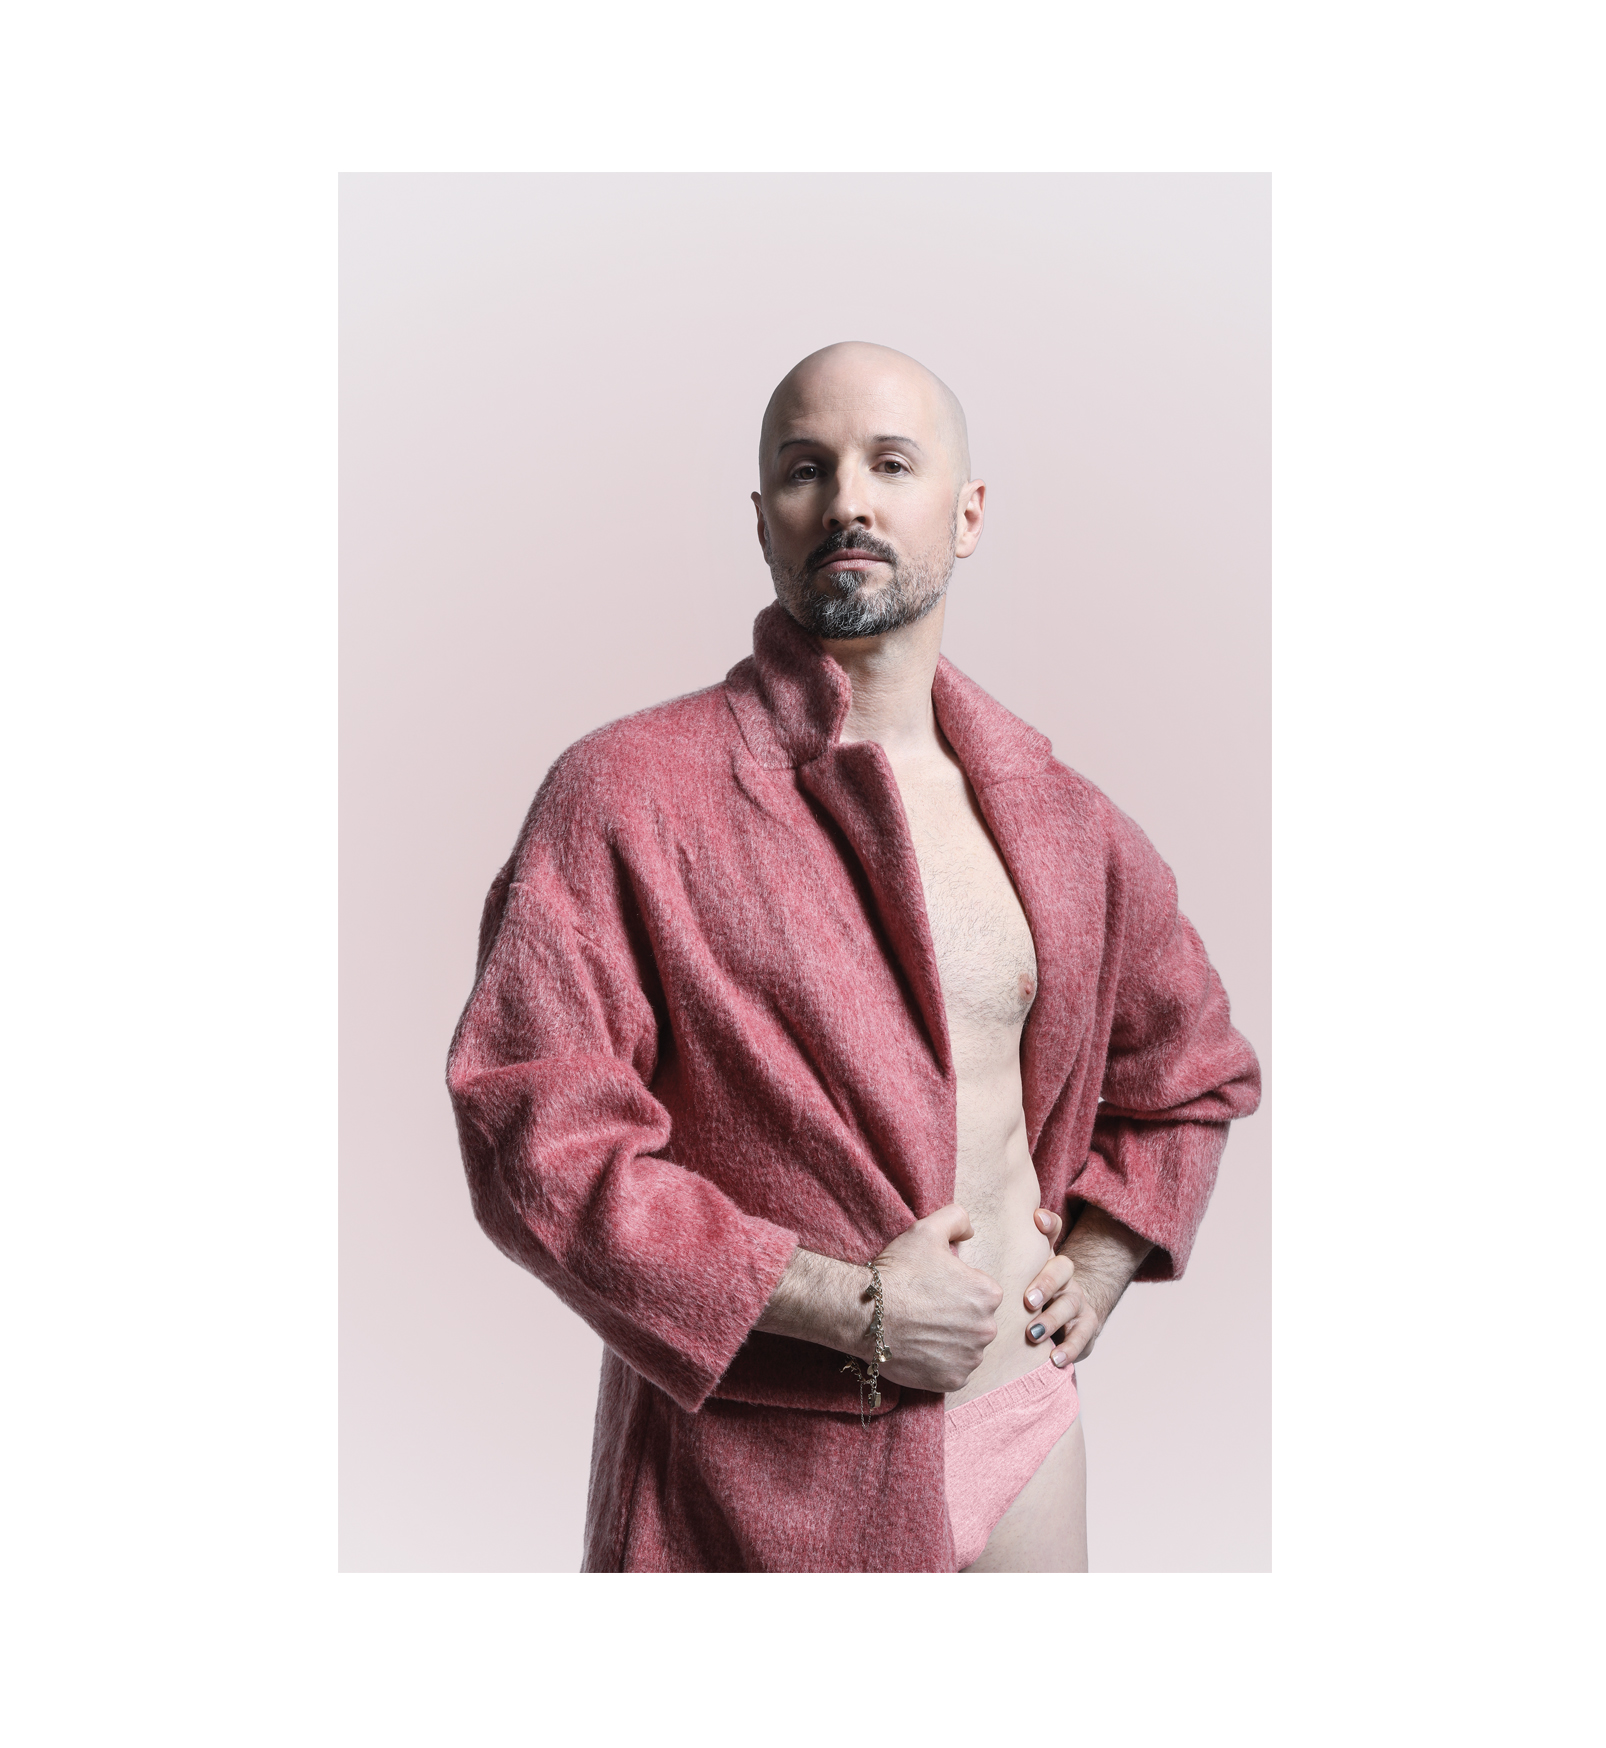 Robert Curran in a fuzzy pink jacket.